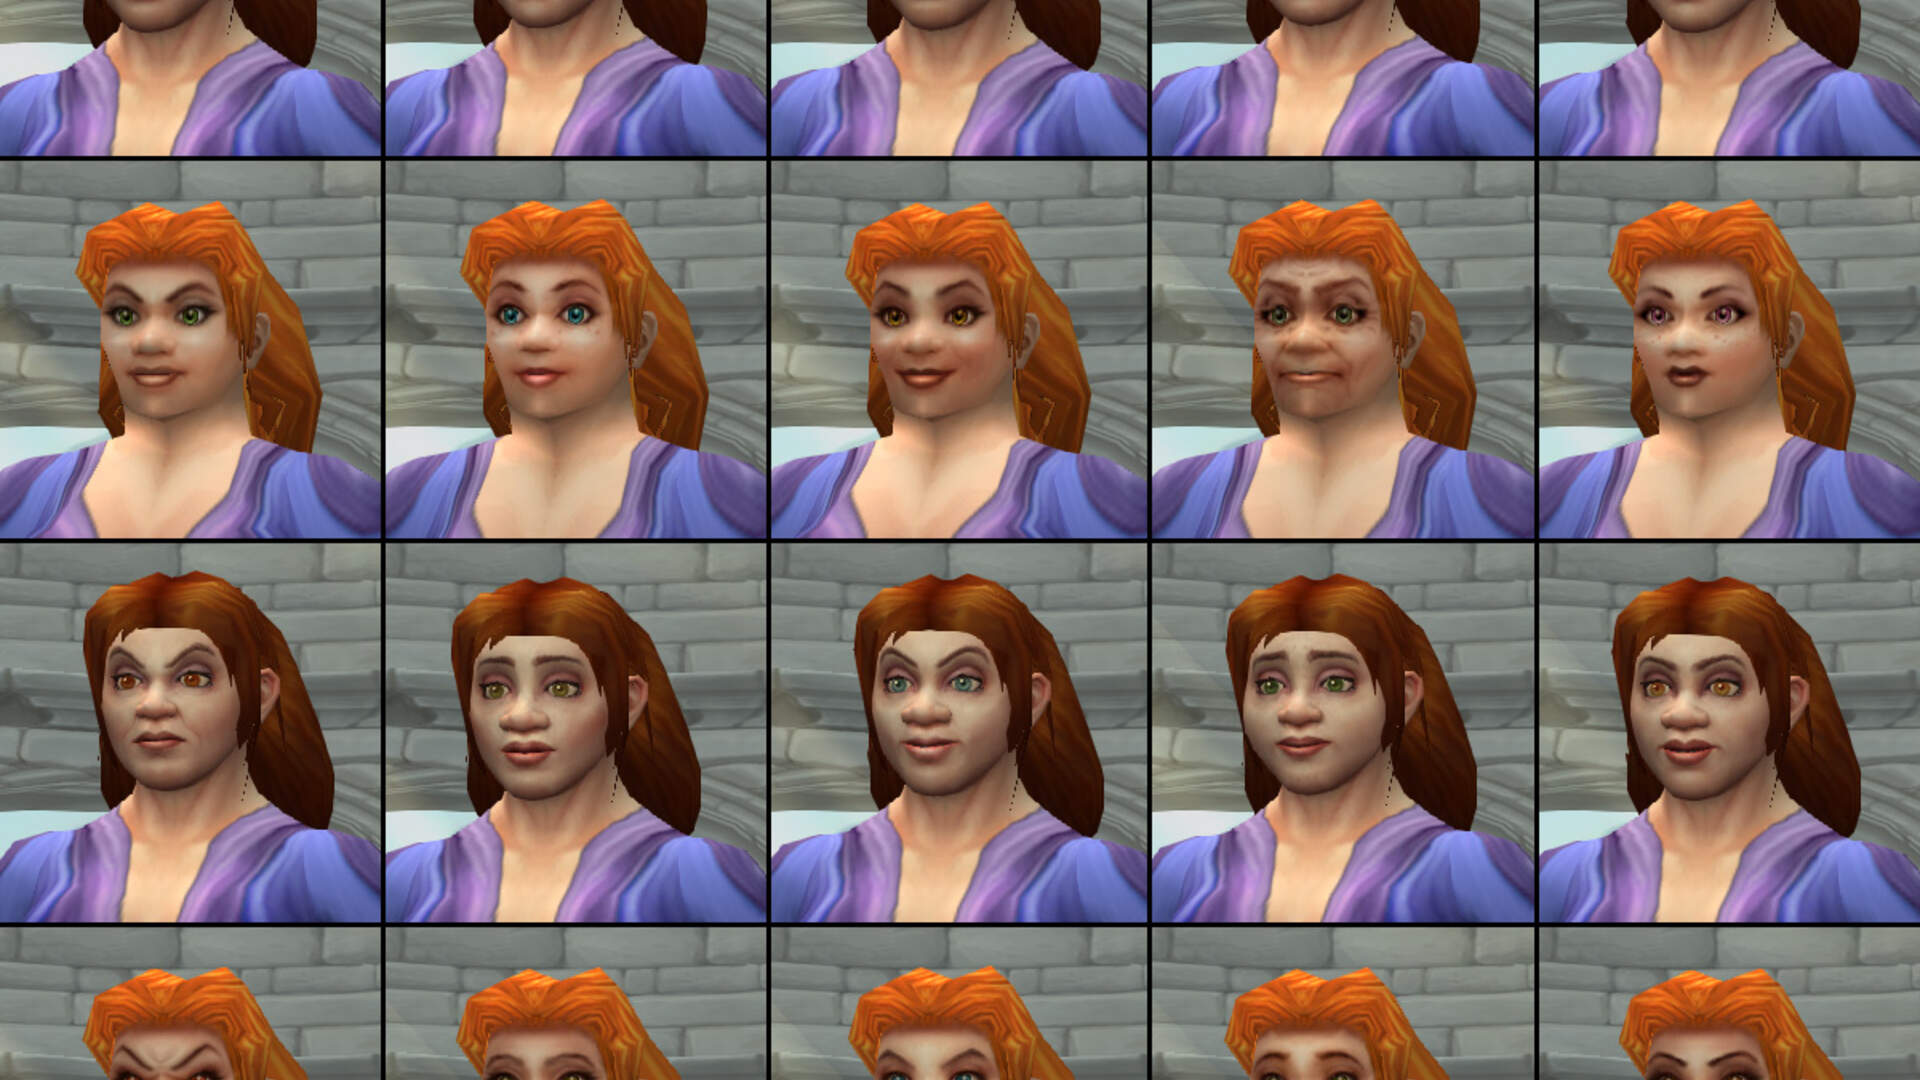 The Changing Faces of World of Warcraft